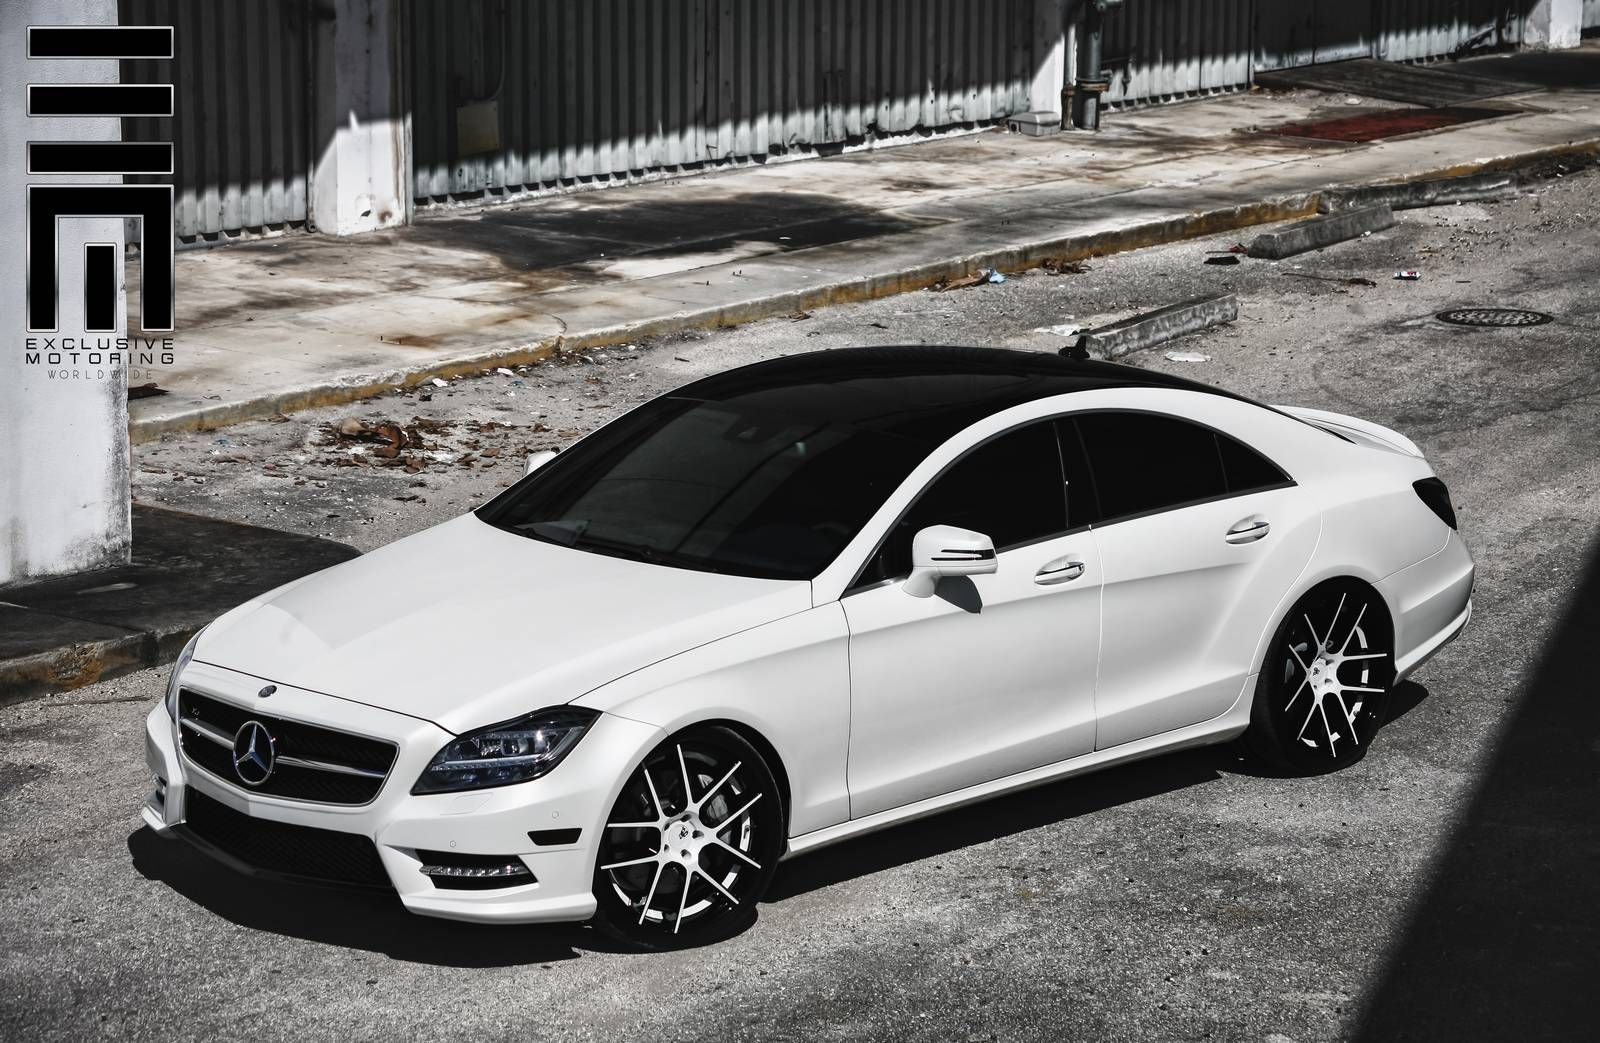 mercedes benz cls550 with avant garde wheels by exclusive motoring buy me pinterest. Black Bedroom Furniture Sets. Home Design Ideas